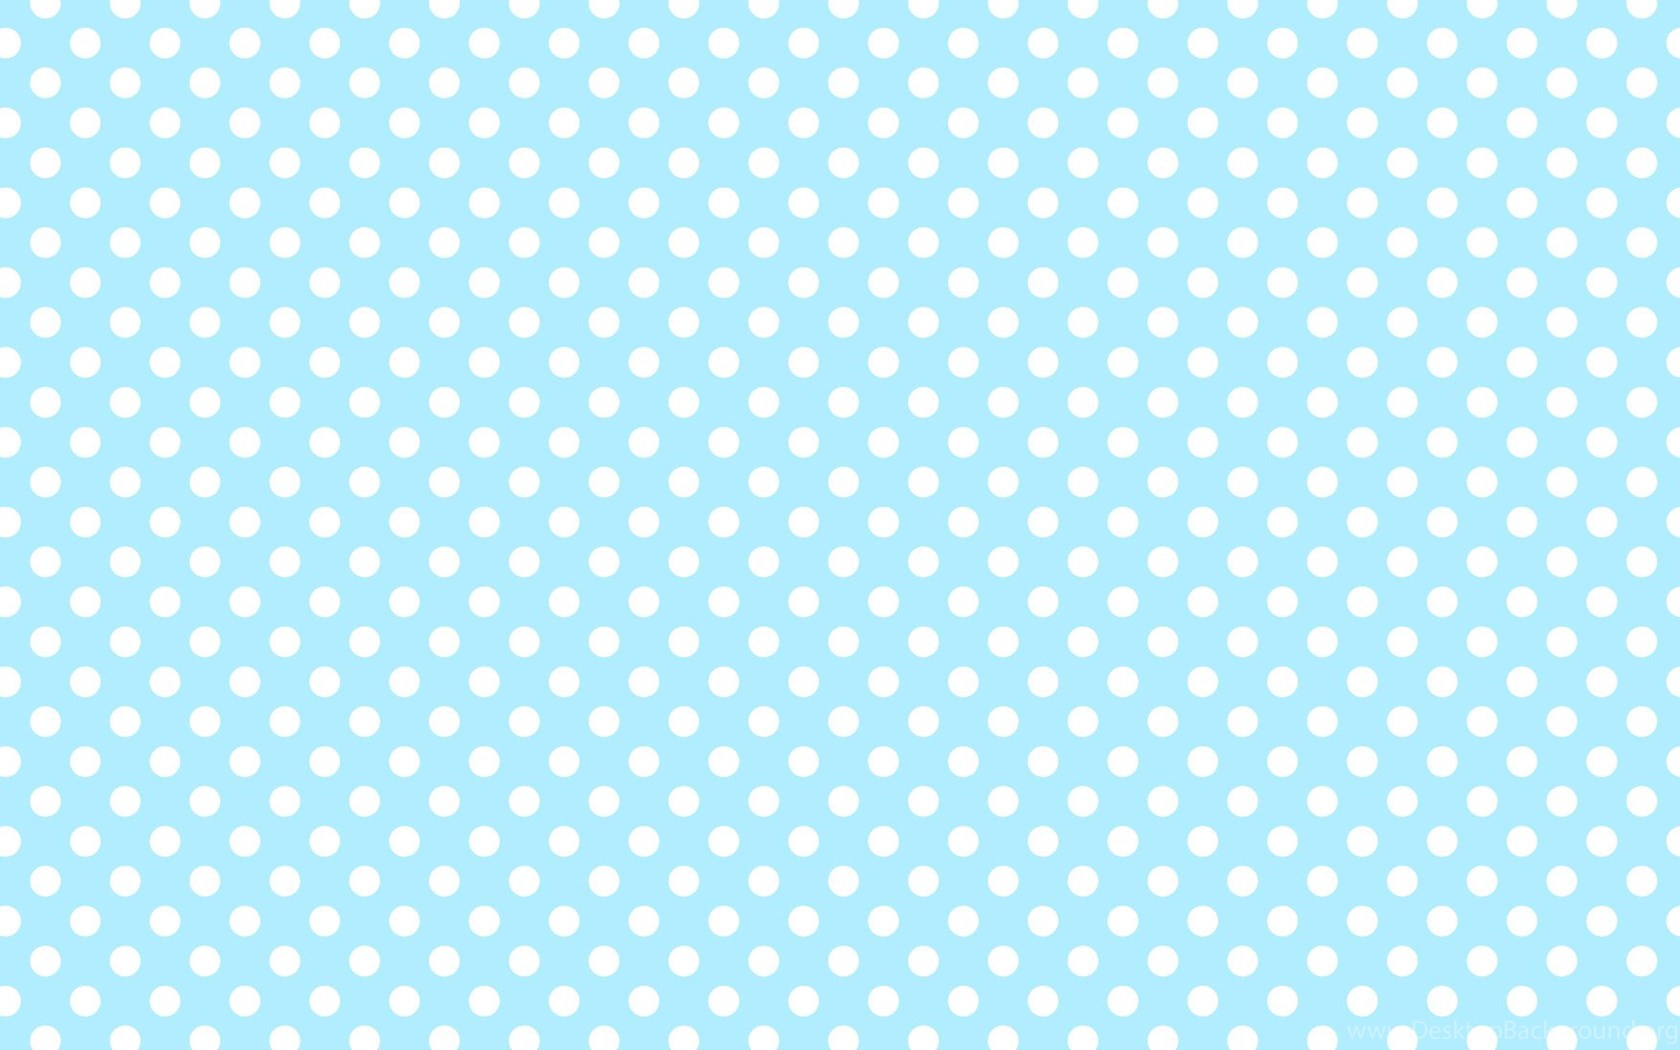 Free polka dot wallpaper for android wallpaper iphone blue dots ... Desktop Background